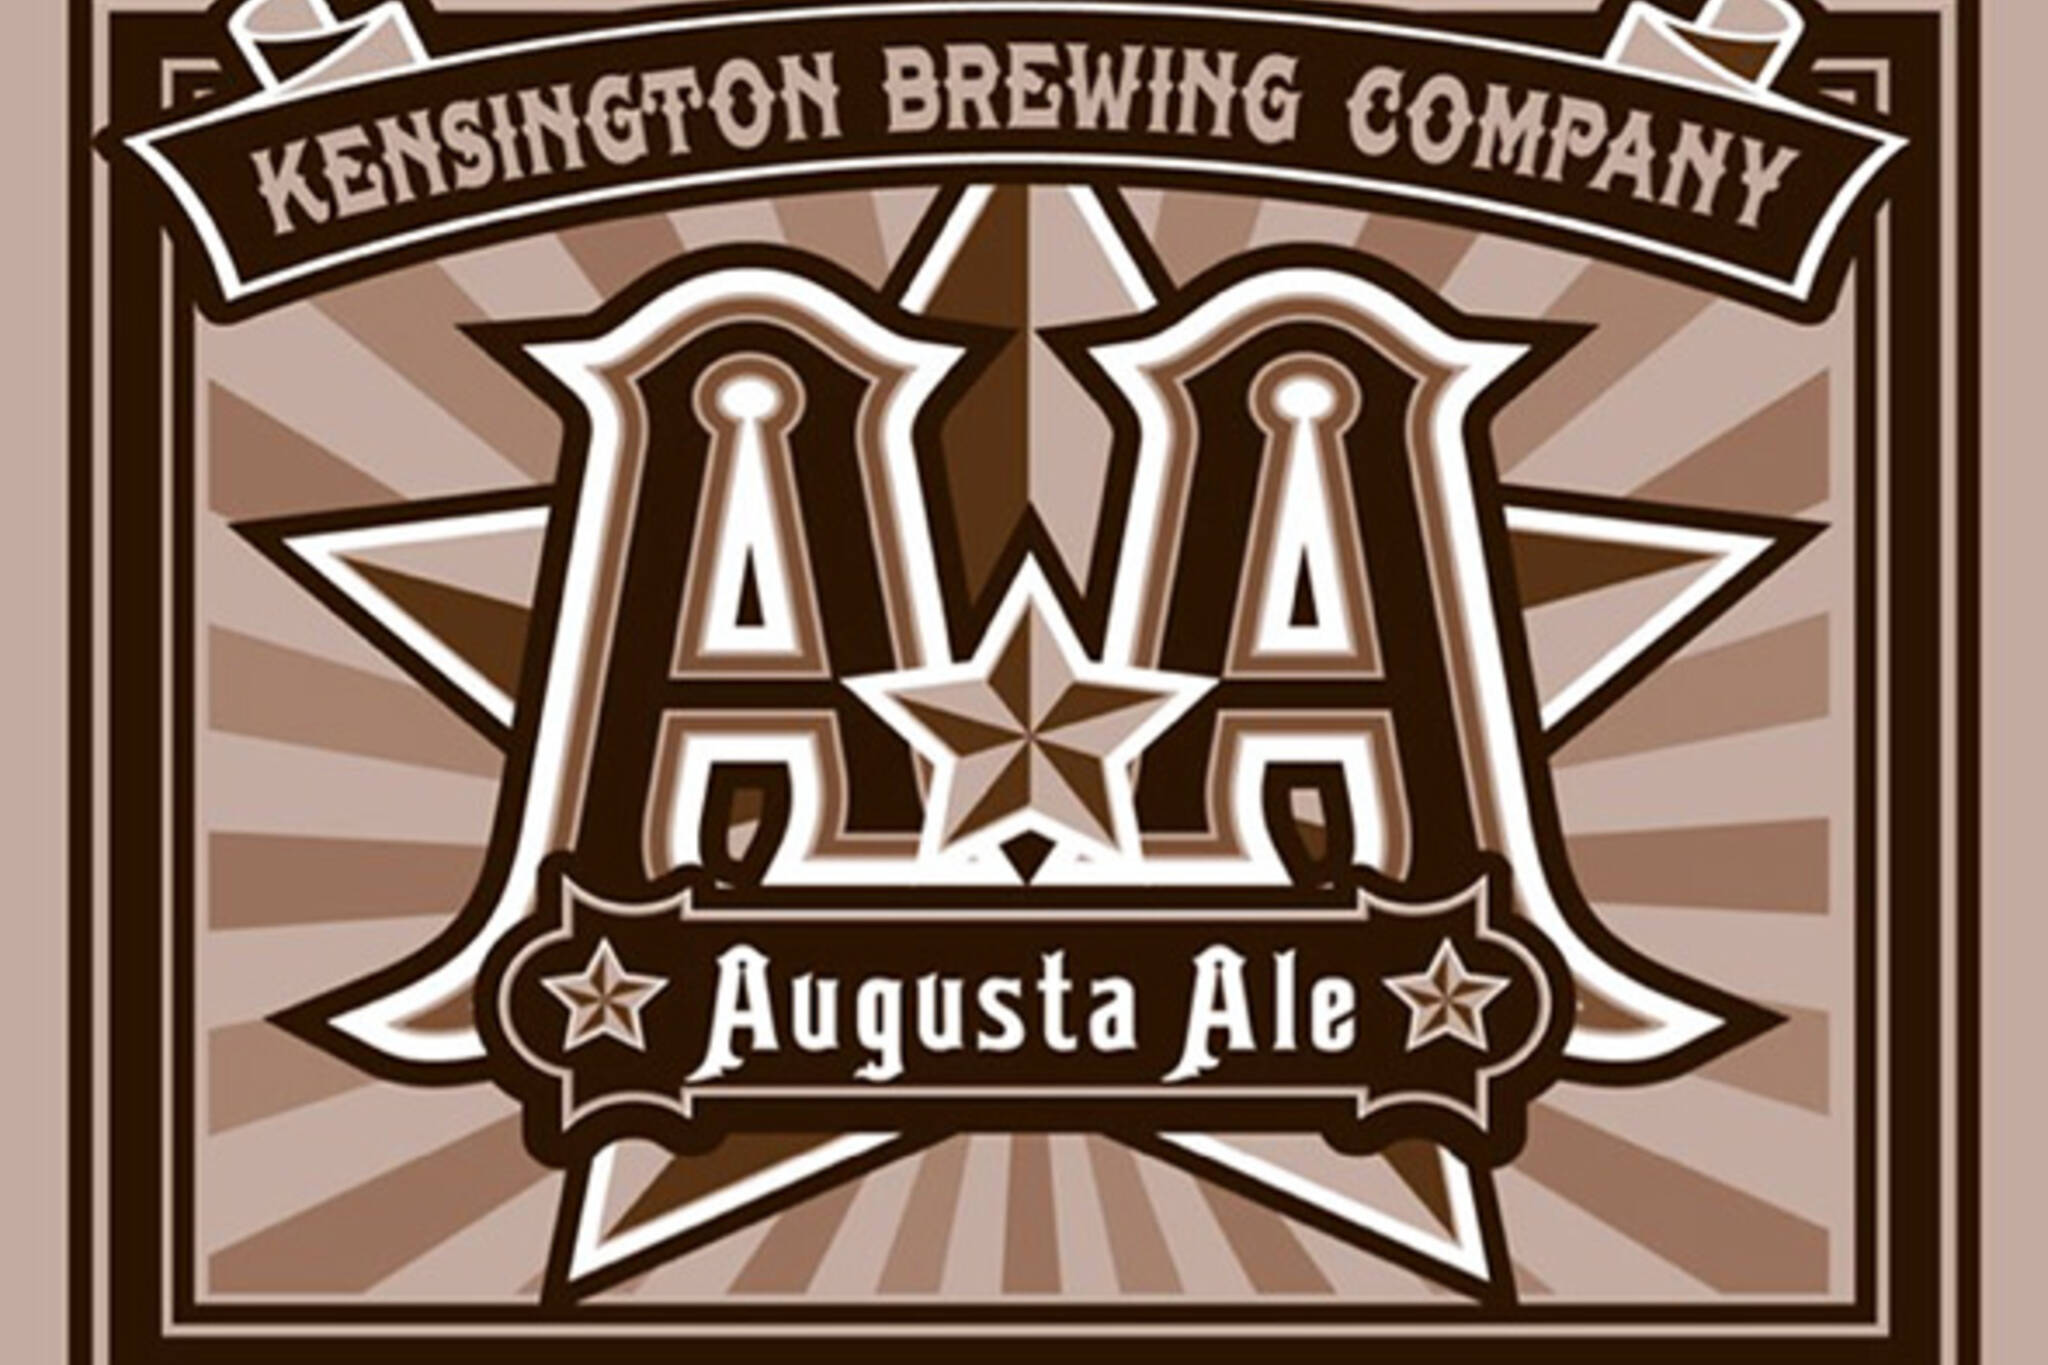 Kensington Brewing Company